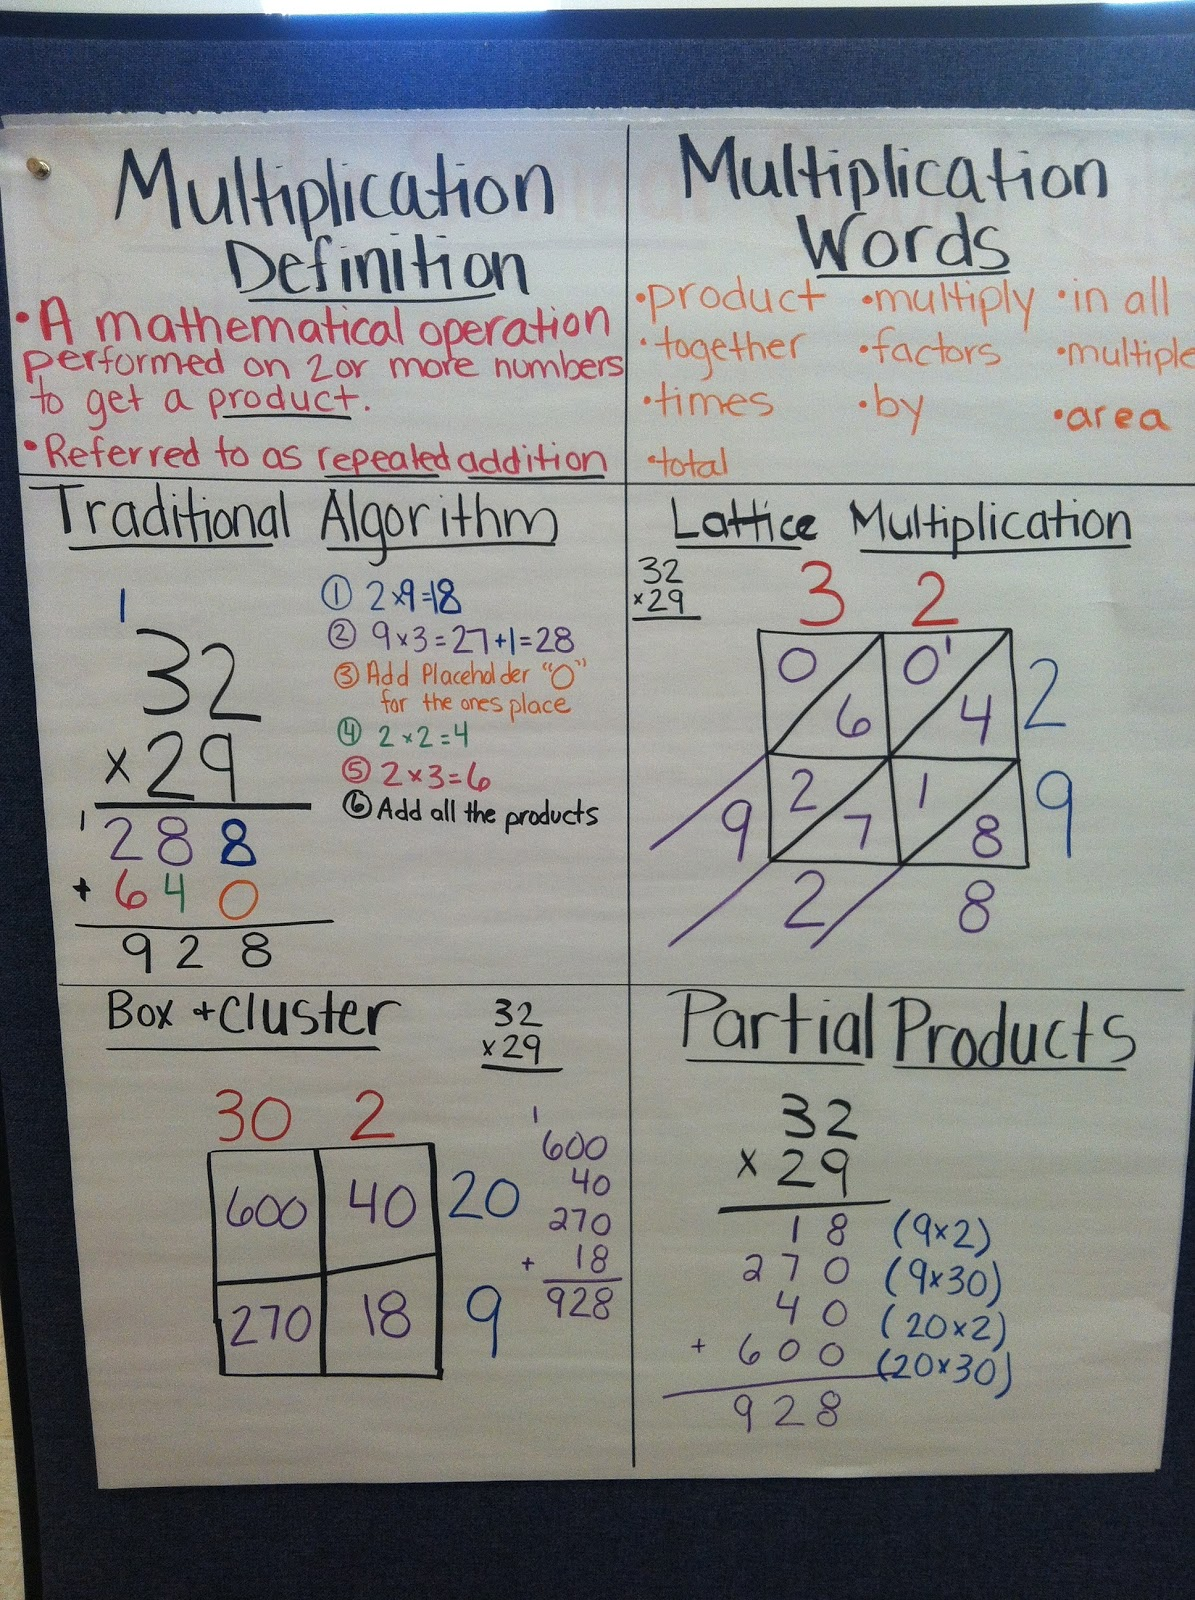 Multiplication Chart Multiplication And Hundreds Chart On